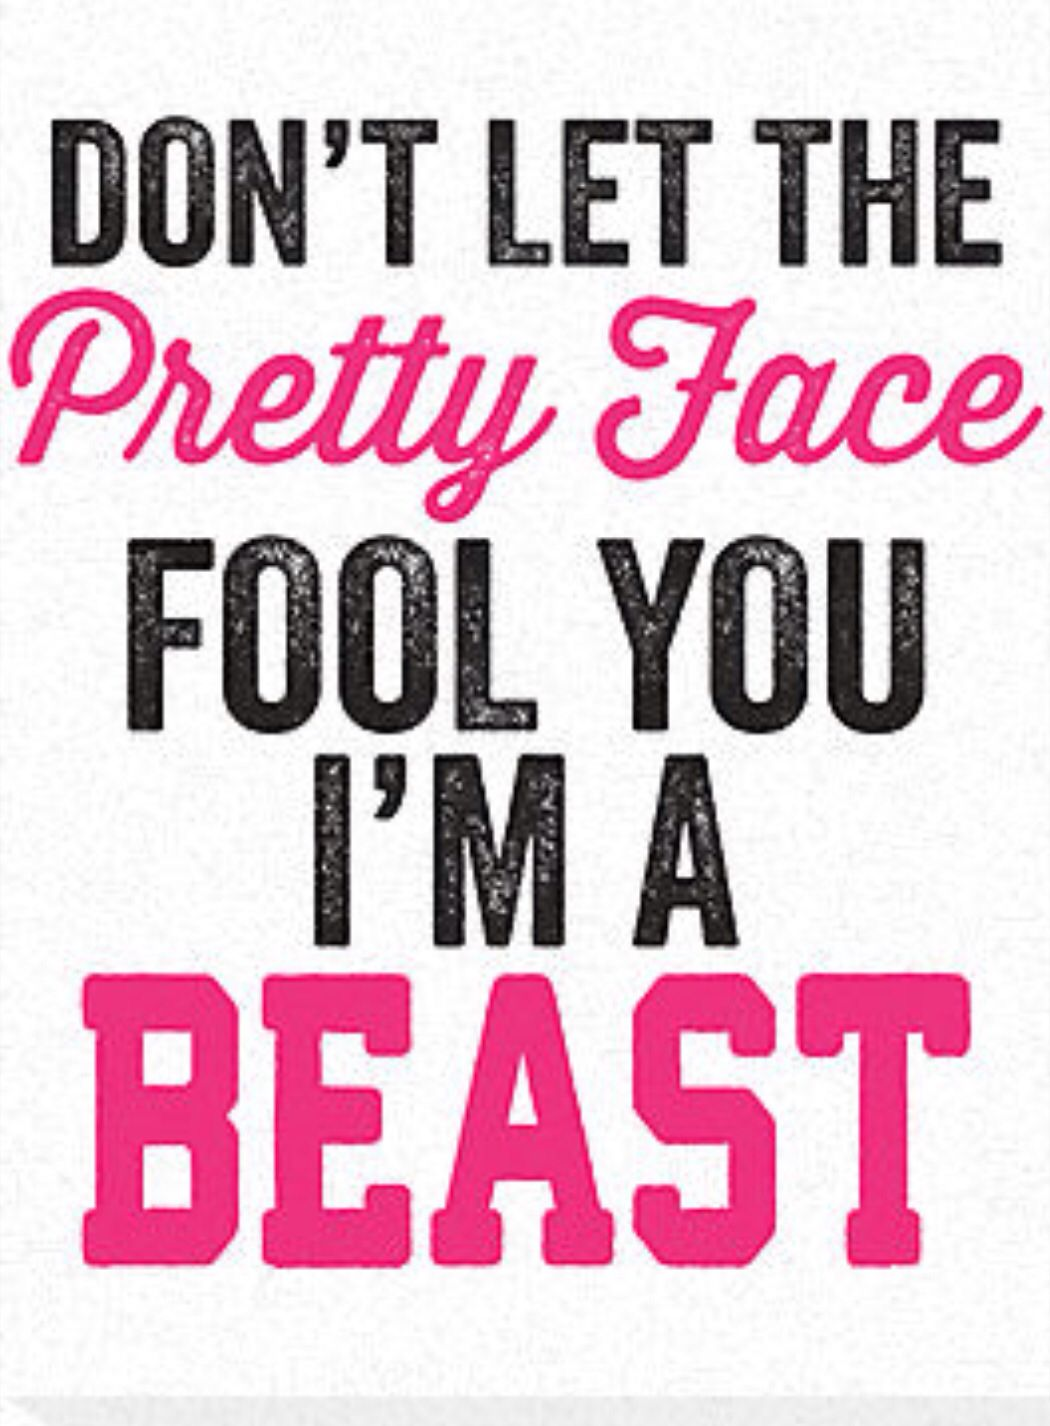 Taekwondo Quotes Pin♥ On Well Said Quotes Libra ❤ Cancer  Pinterest